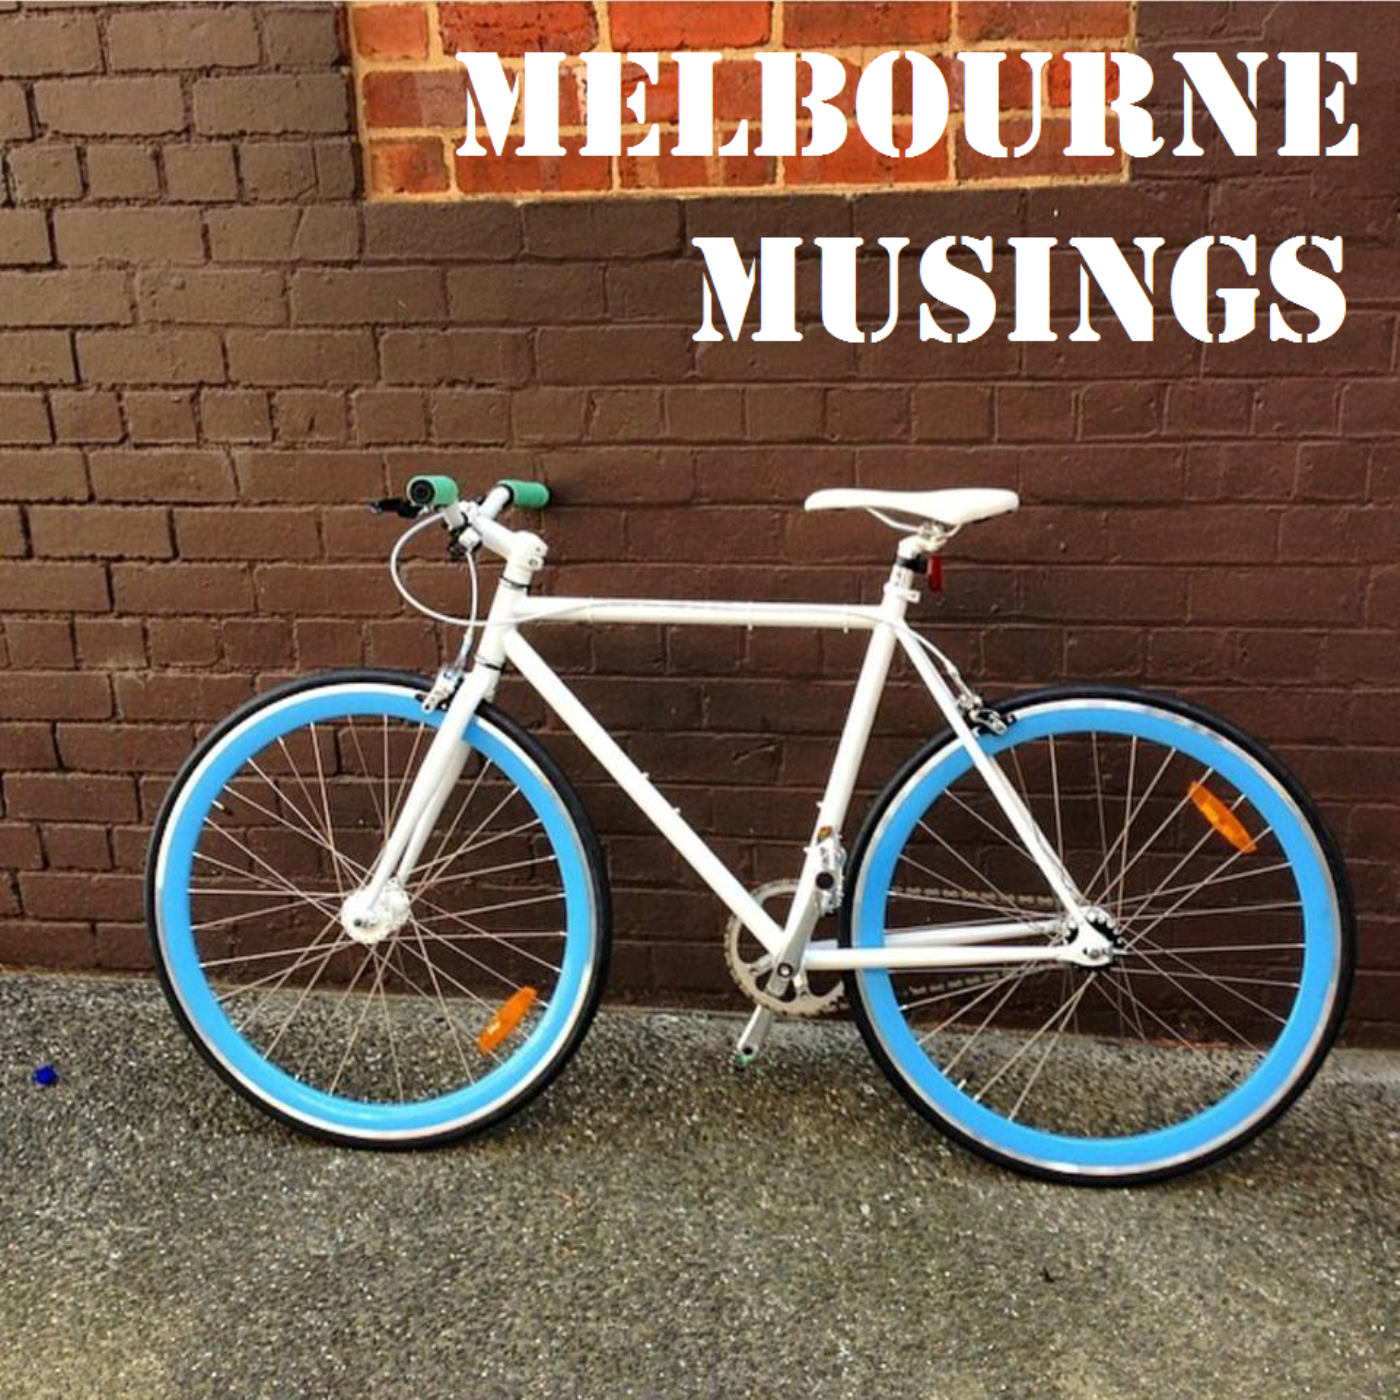 Melbourne Musings Episode 81 show art